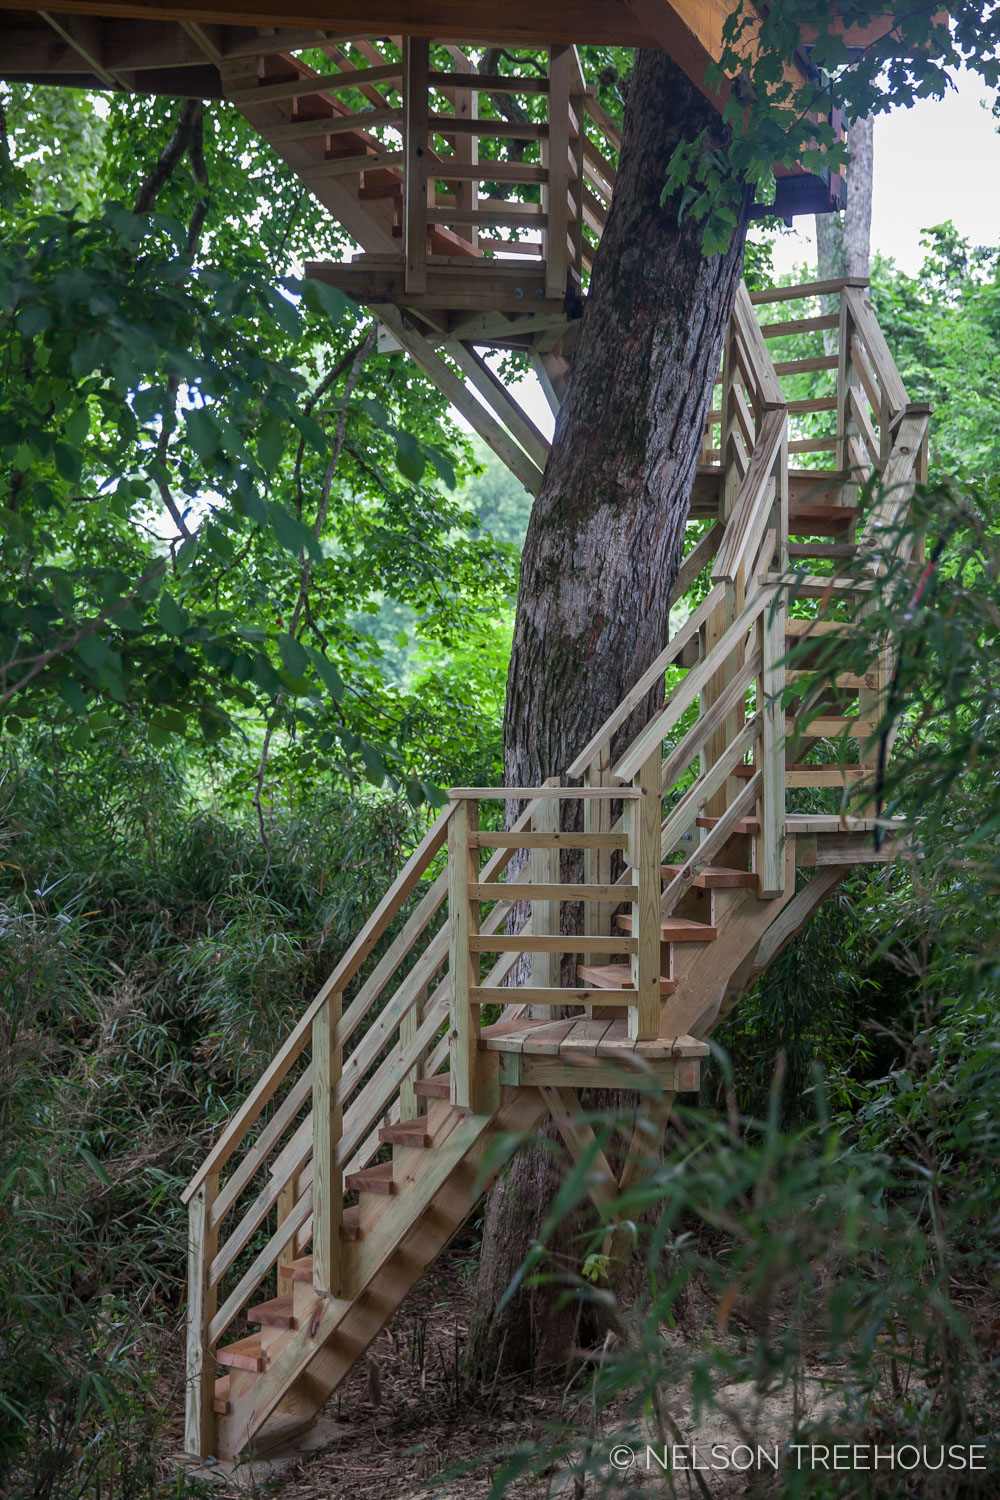 Off Tv Photo Tour Tennessee Riverbank Treehouse Nelson